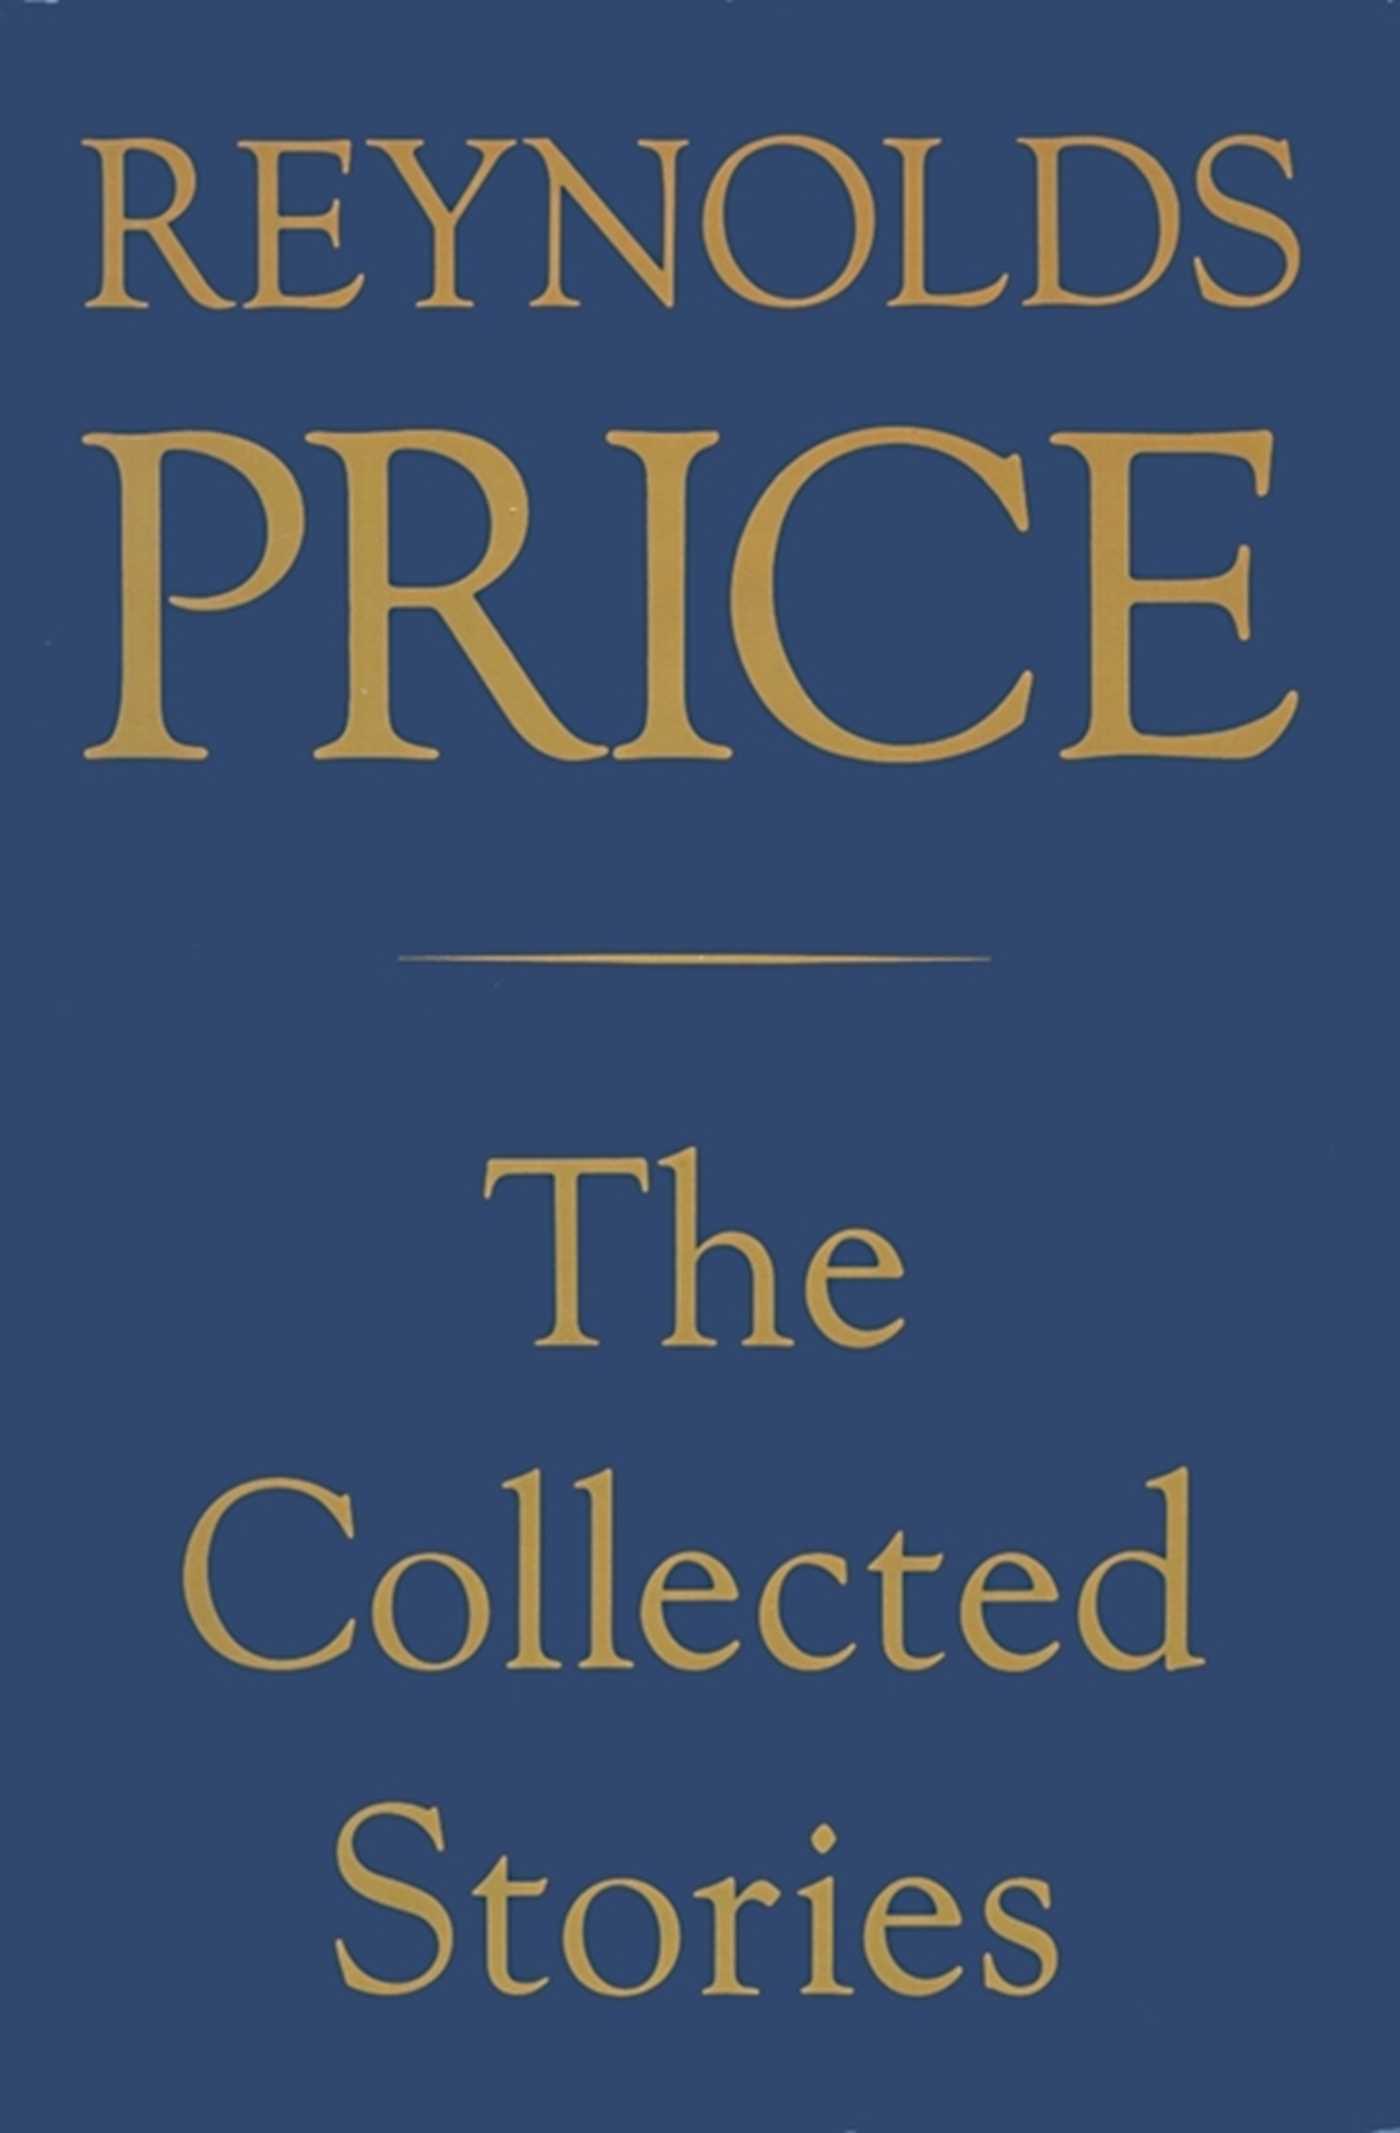 Collected stories of reynolds price 9781439106051 hr